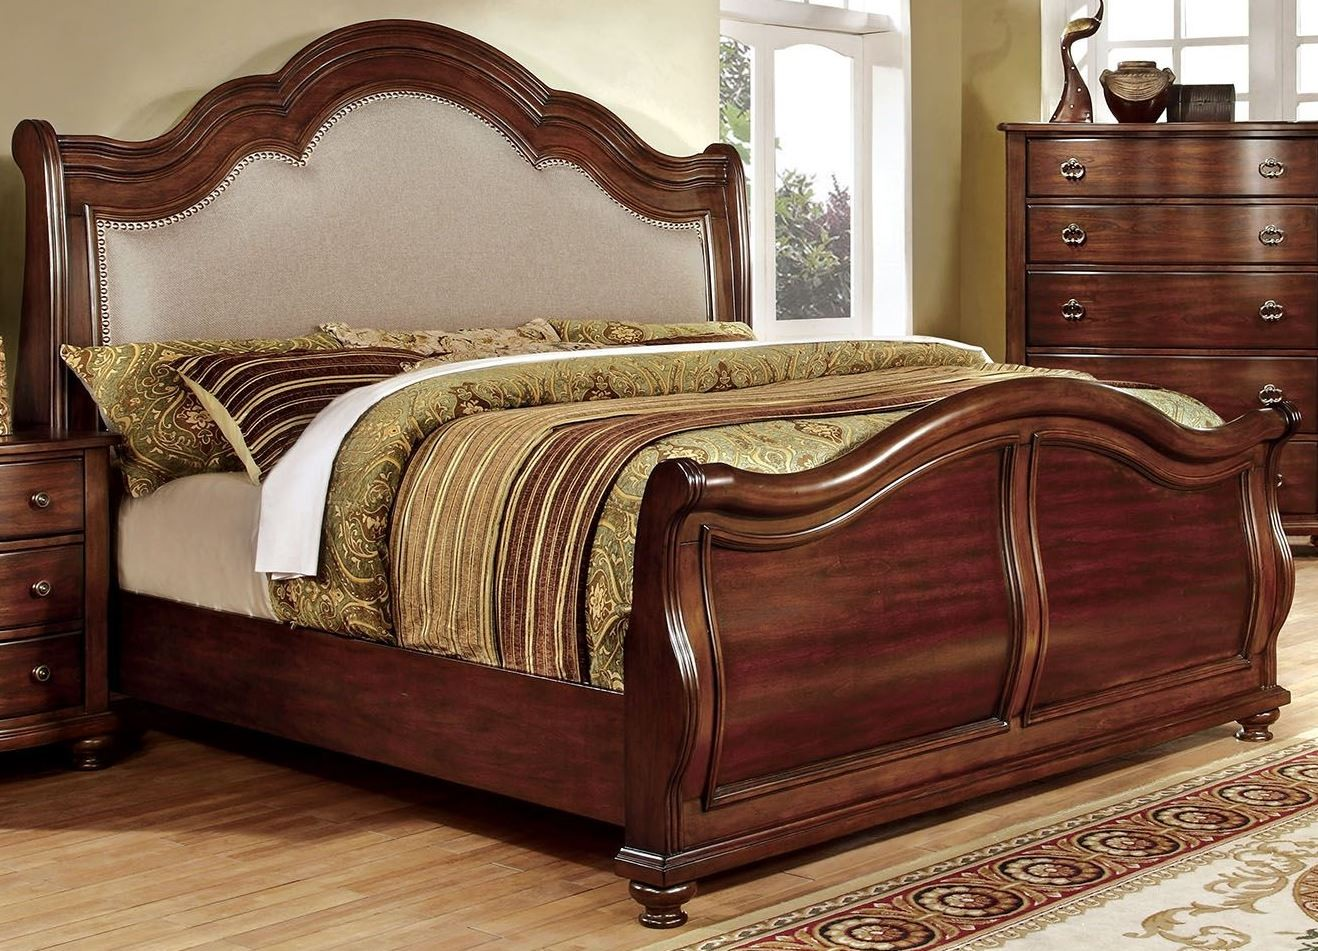 Bellavista Brown Cherry Sleigh Bedroom Set From Furniture Of America Cm7350h Q Bed Coleman